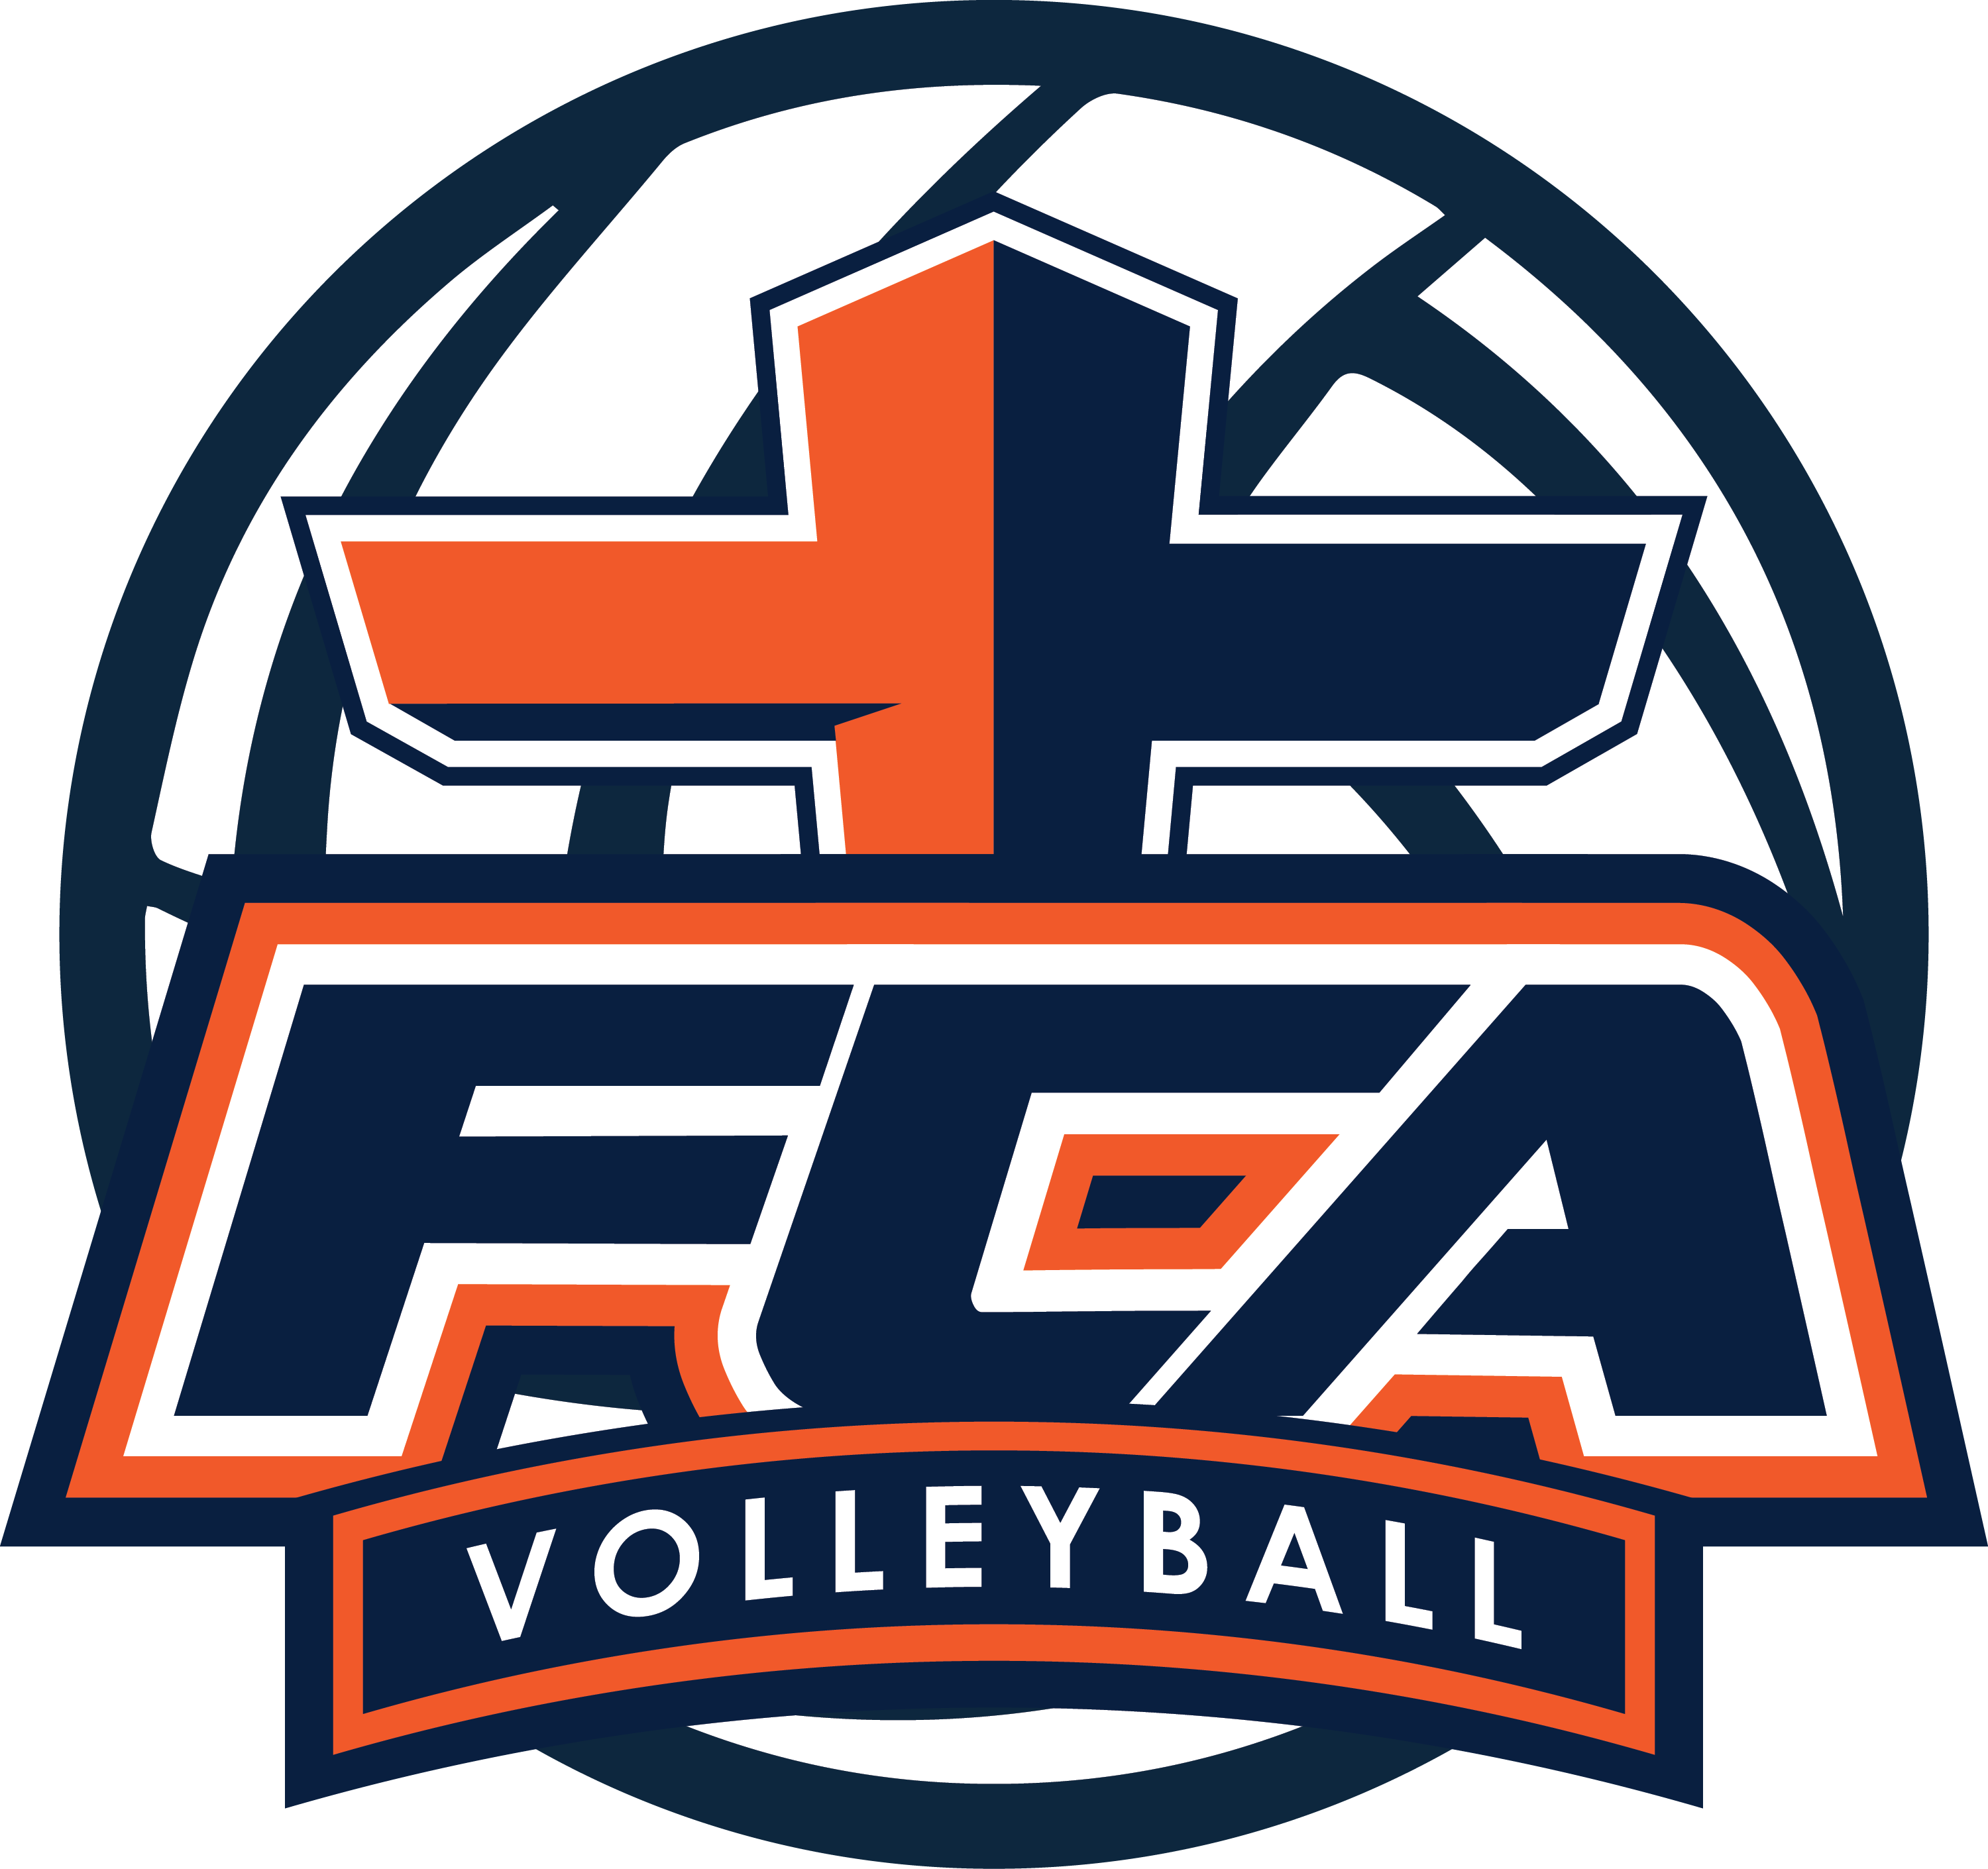 Volleyball clip youth. Mission statement fca club